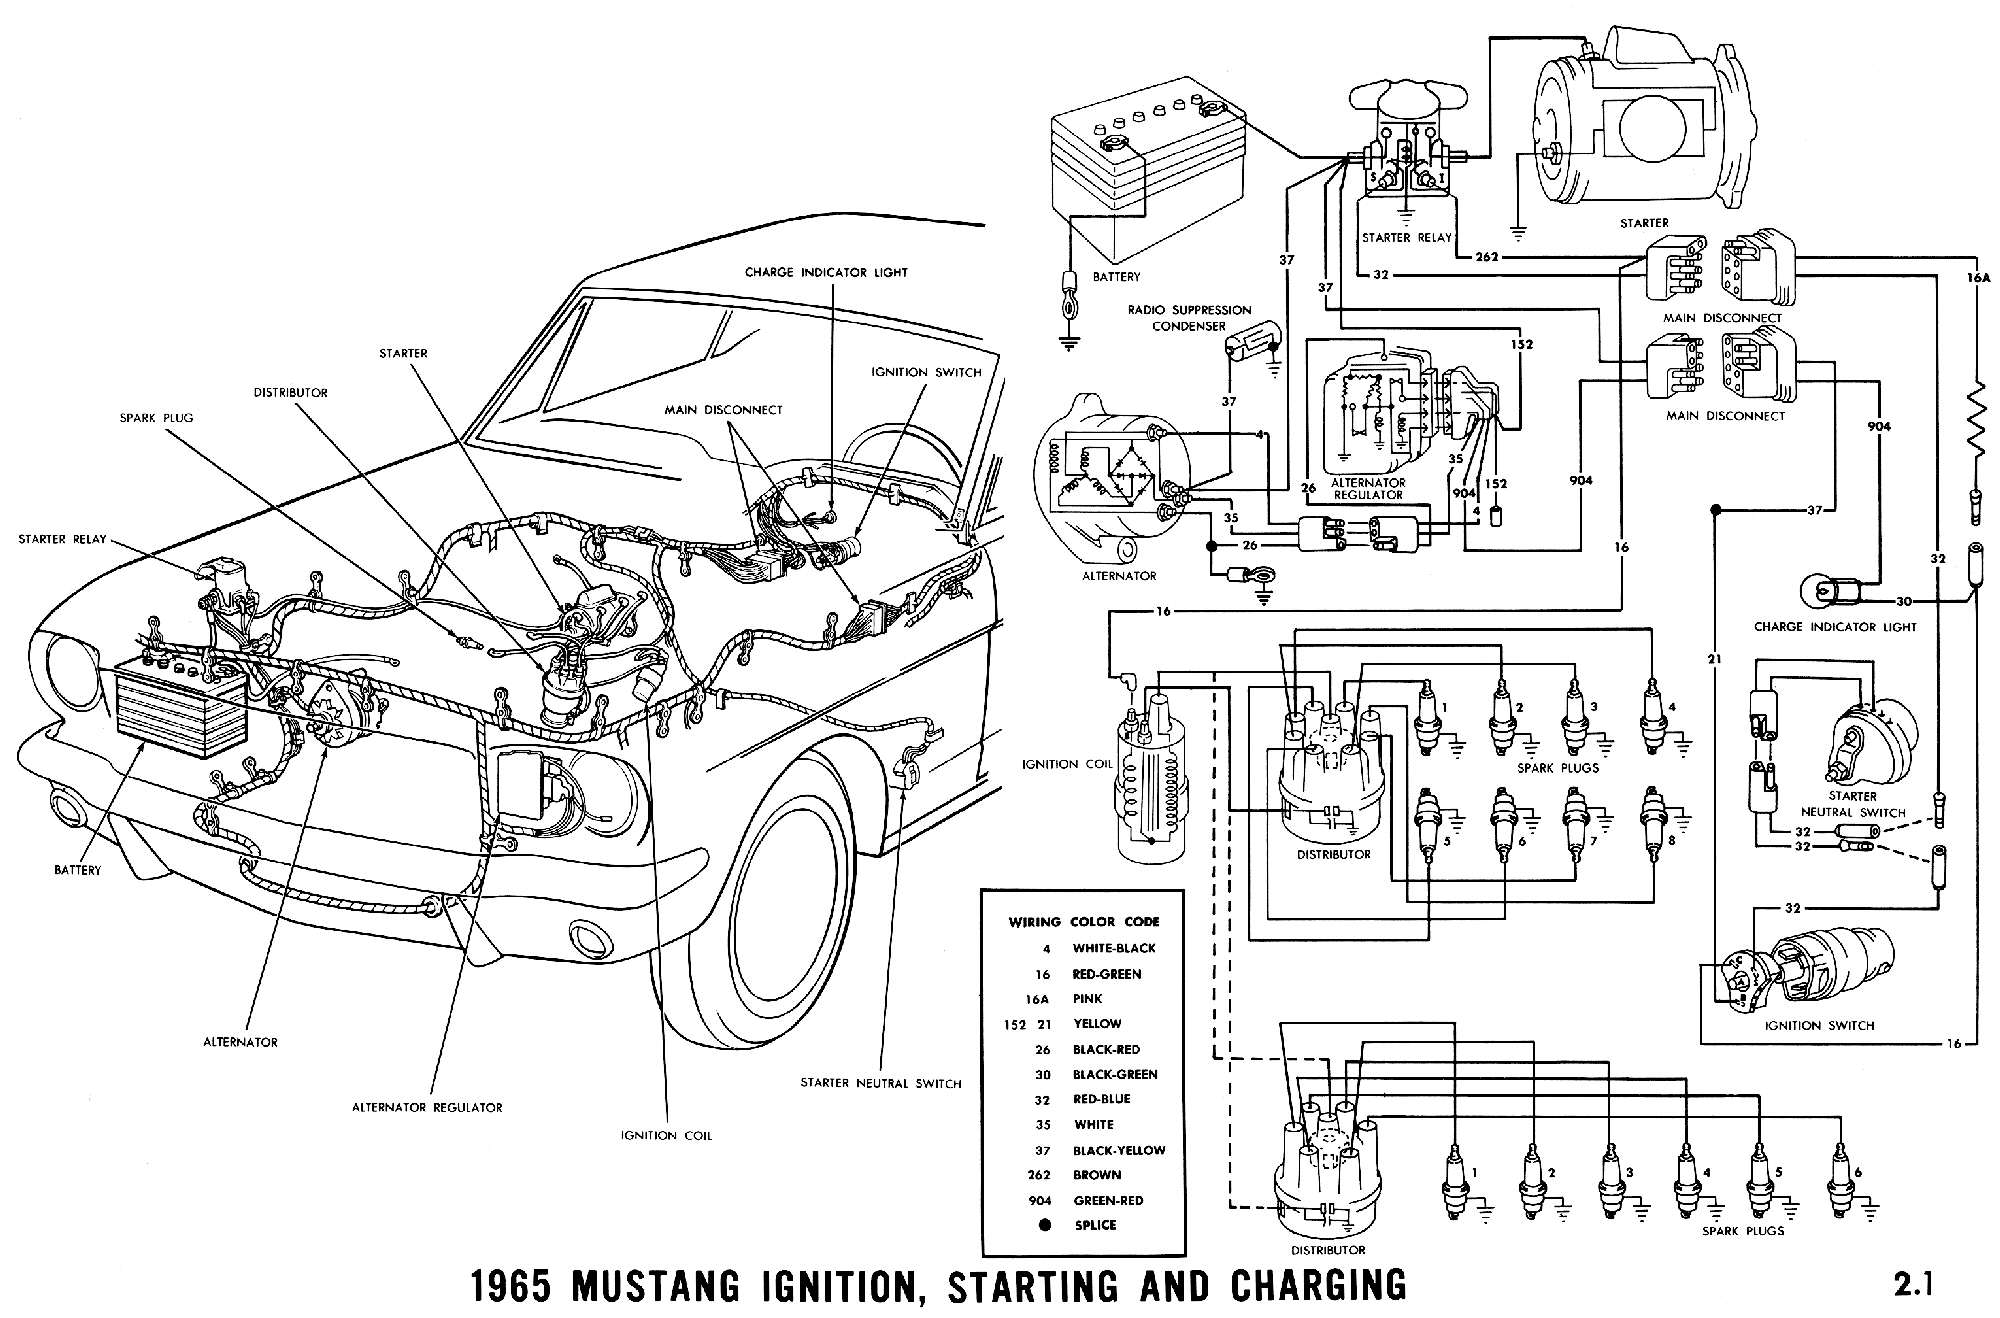 1976 ford mustang wiring diagram schematics wiring diagram 68 mustang turn signal wiring diagram ford mustang wiring diagram detailed schematic diagrams 1981 mustang wiring diagram 1965 mustang wiring diagrams average